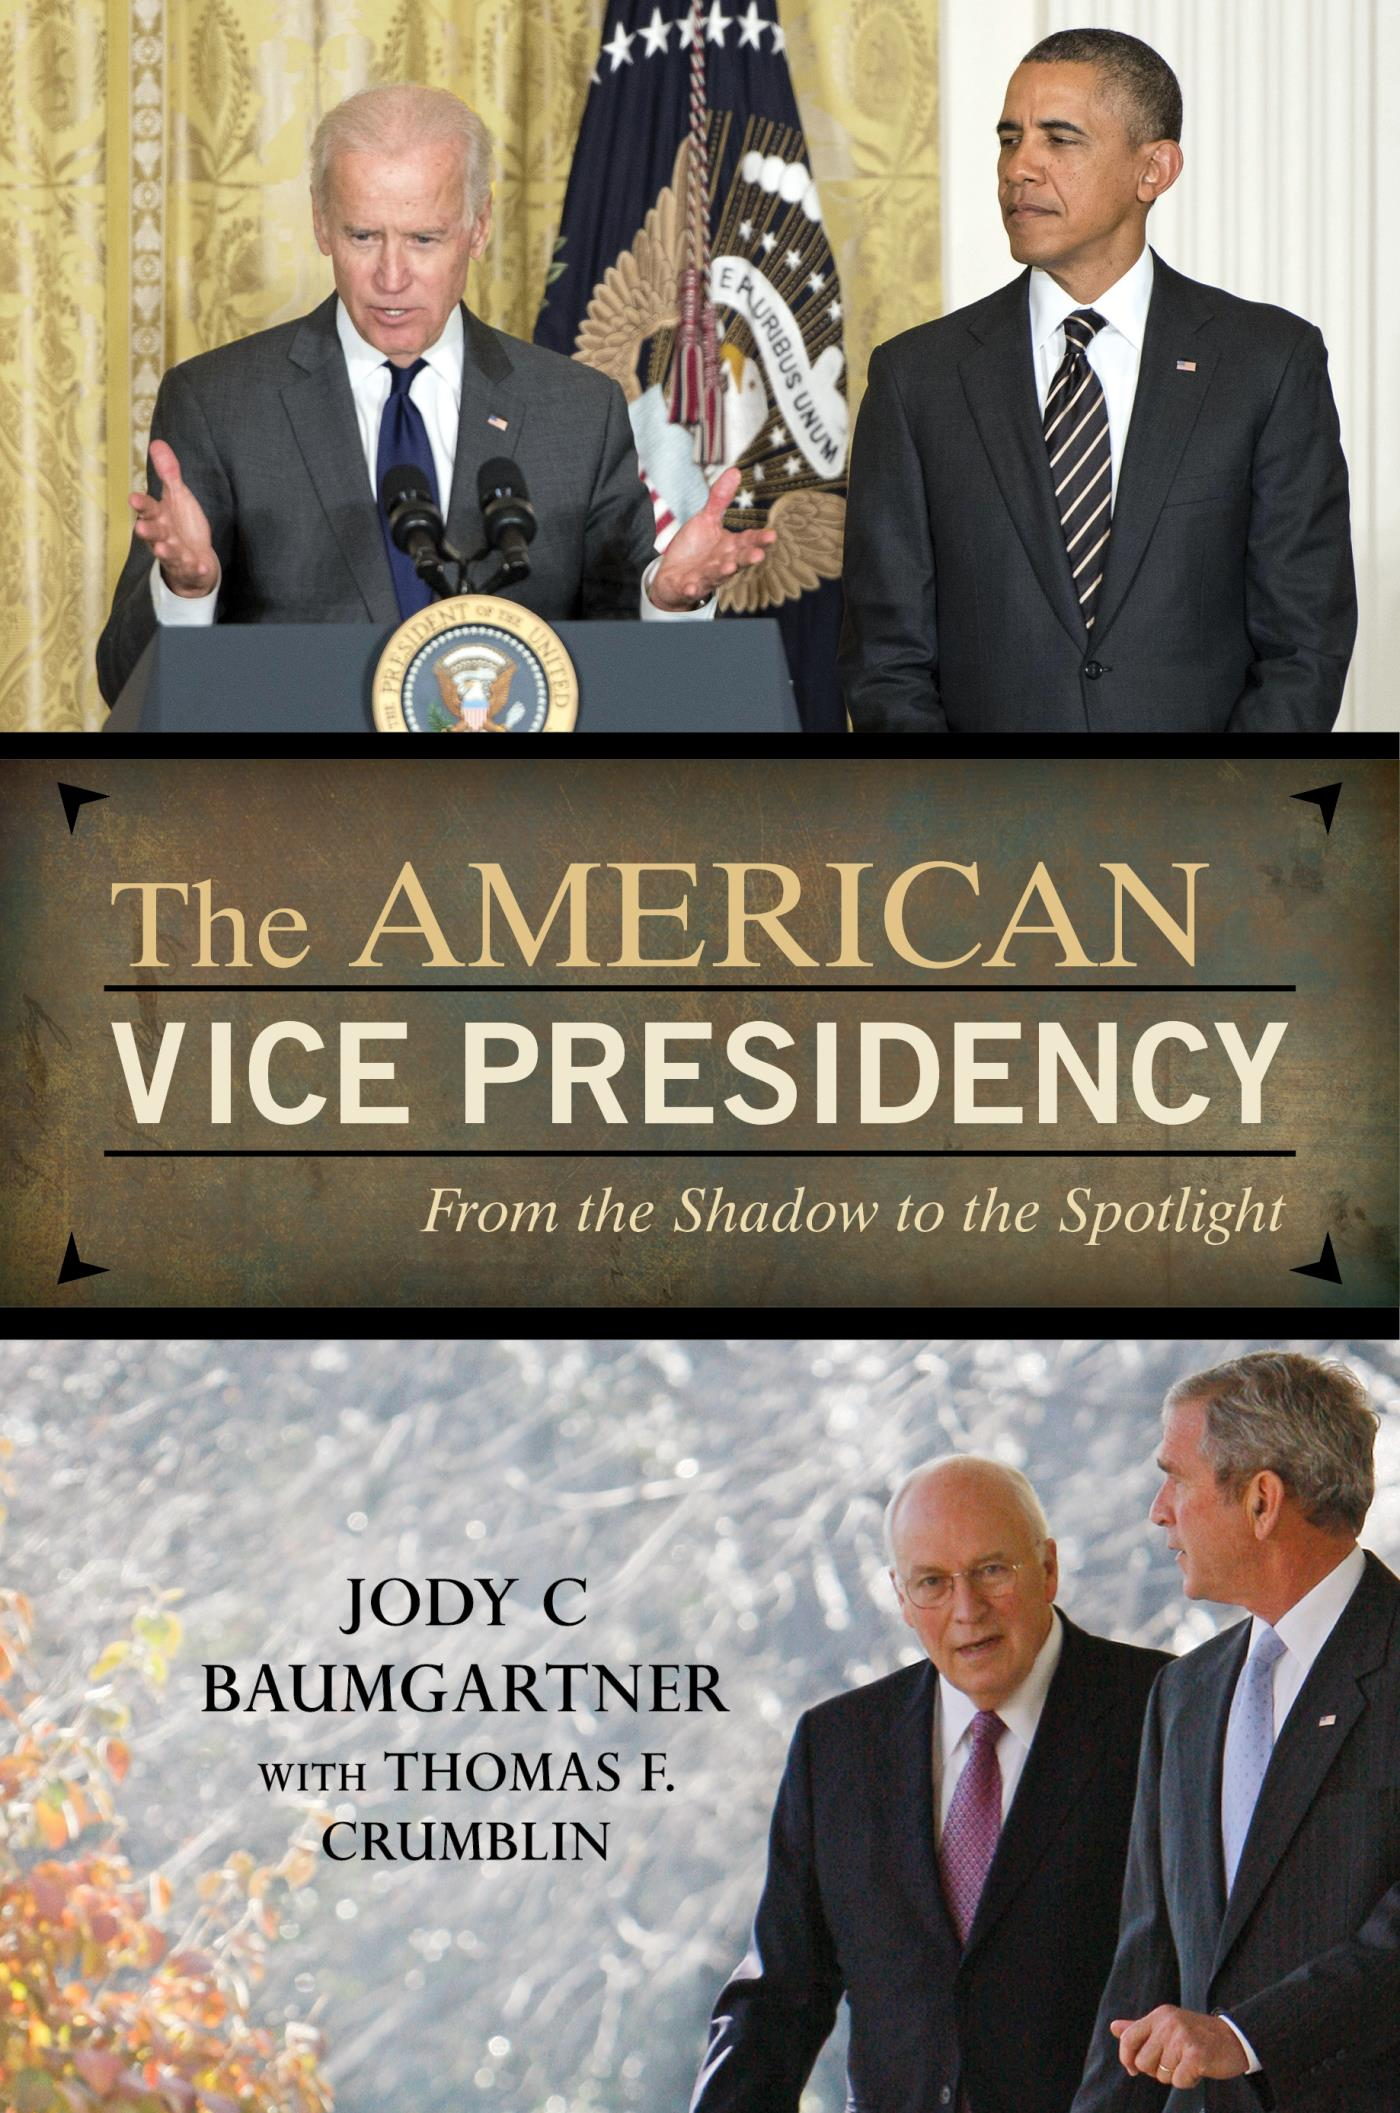 The American Vice Presidency